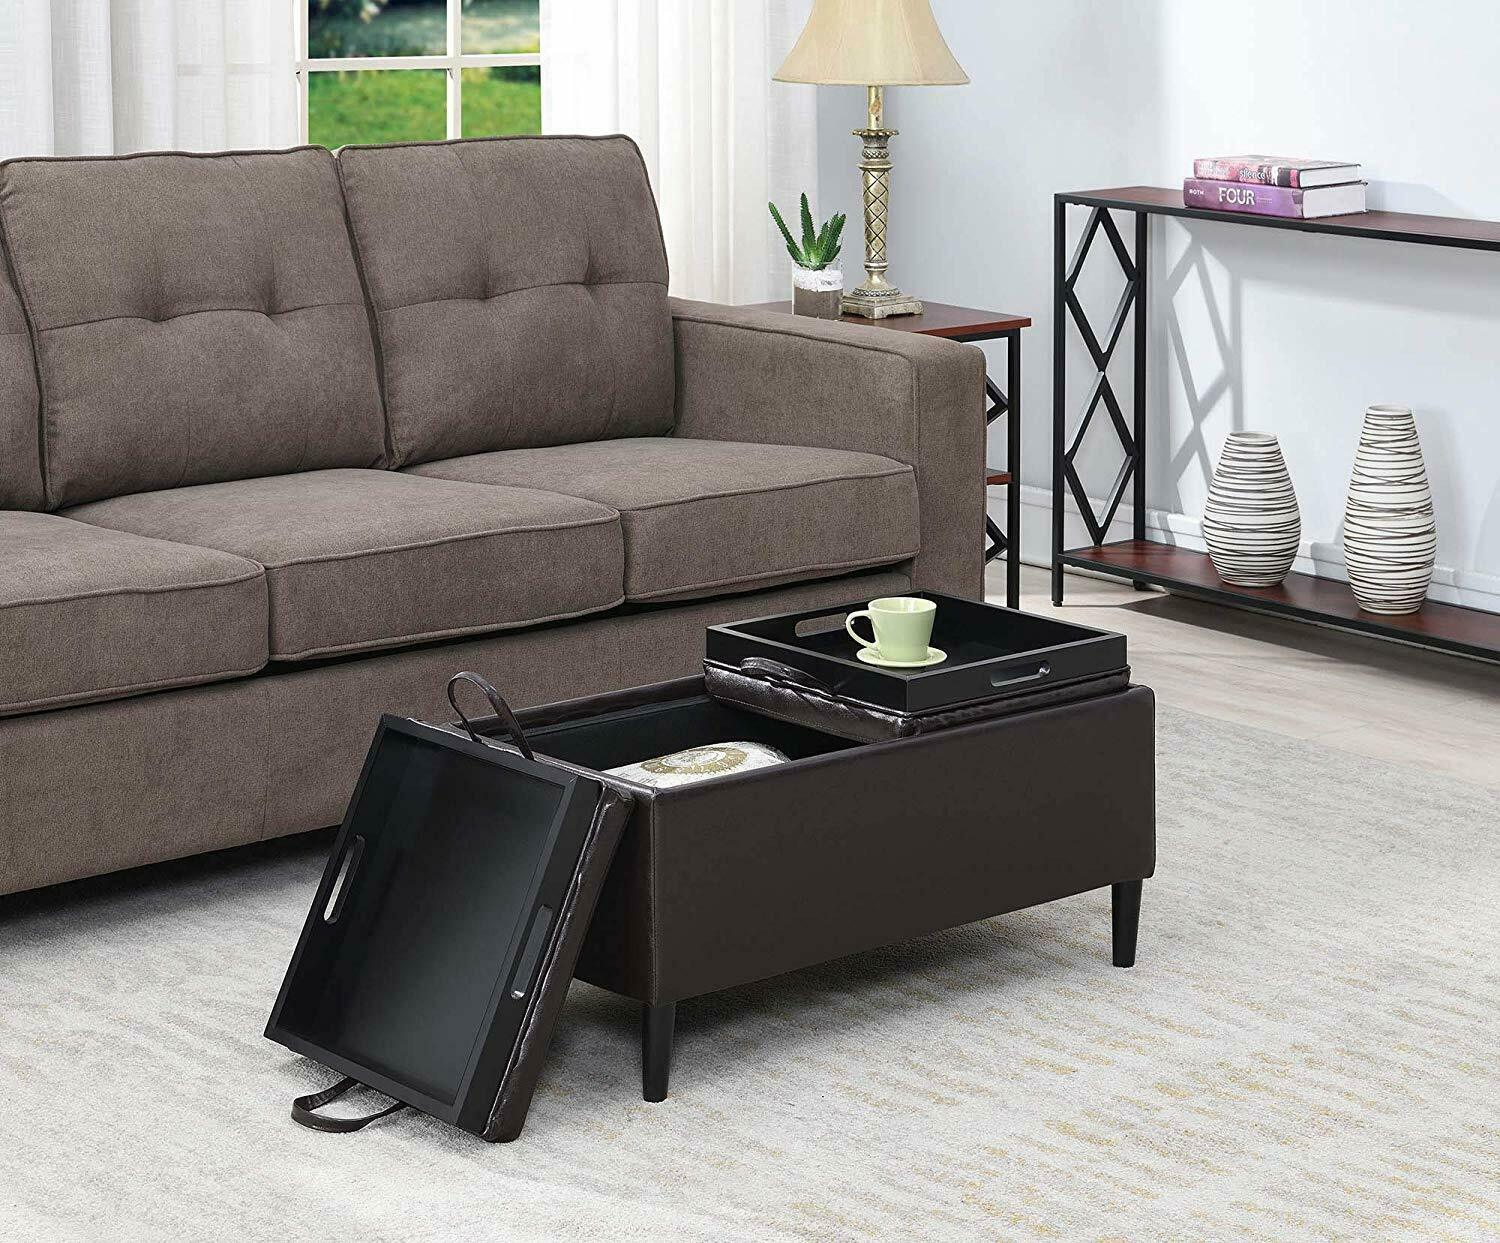 Armen Living Corbett Leather And Linen Coffee Table Storage Ottoman For Sale Online Ebay